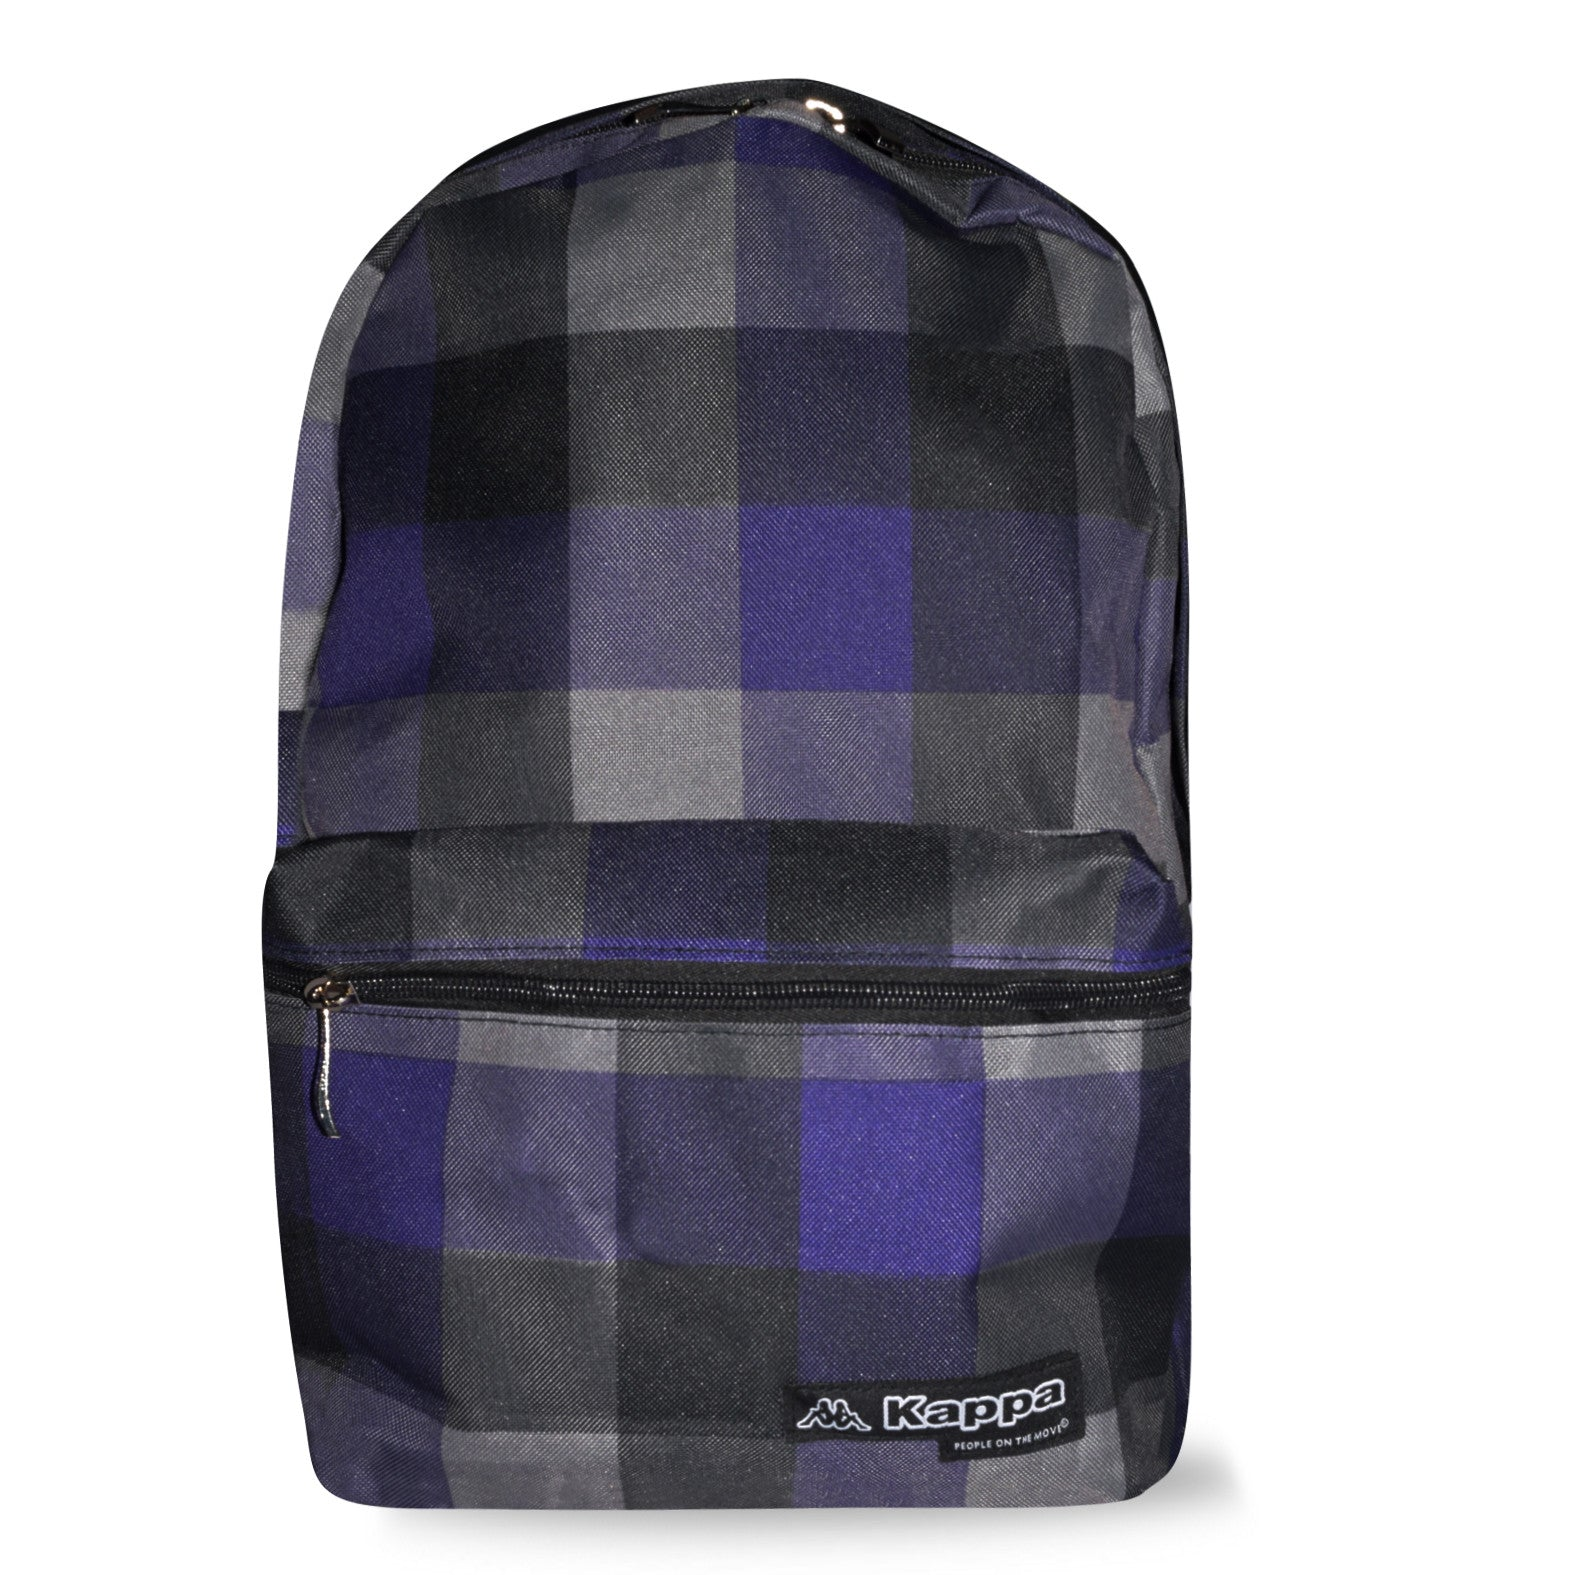 Backpack Lifestyle Morado MTG002-1